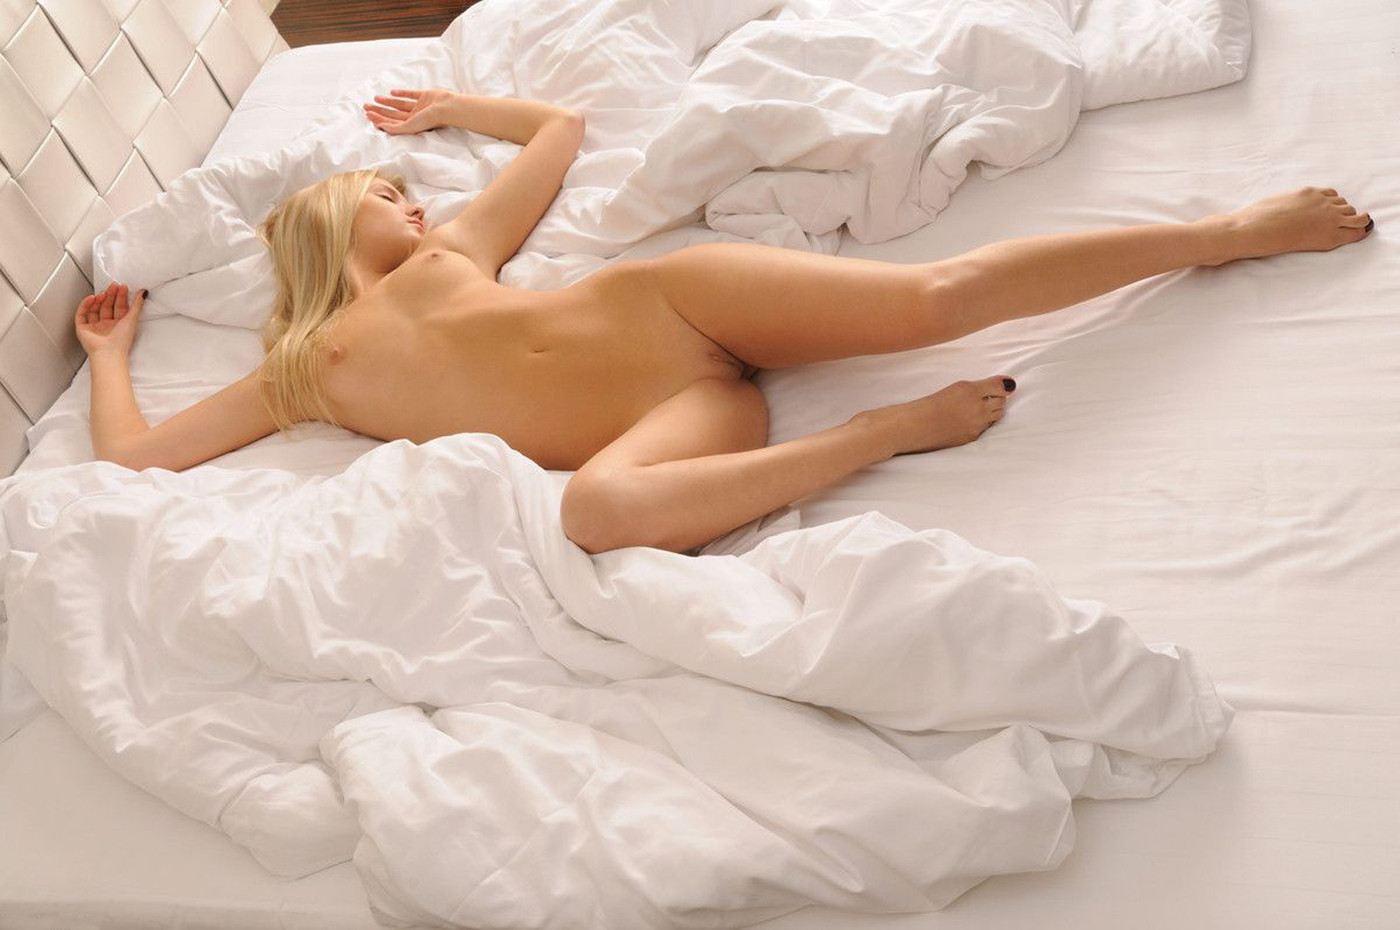 Necessary Hot chick laying down naked not